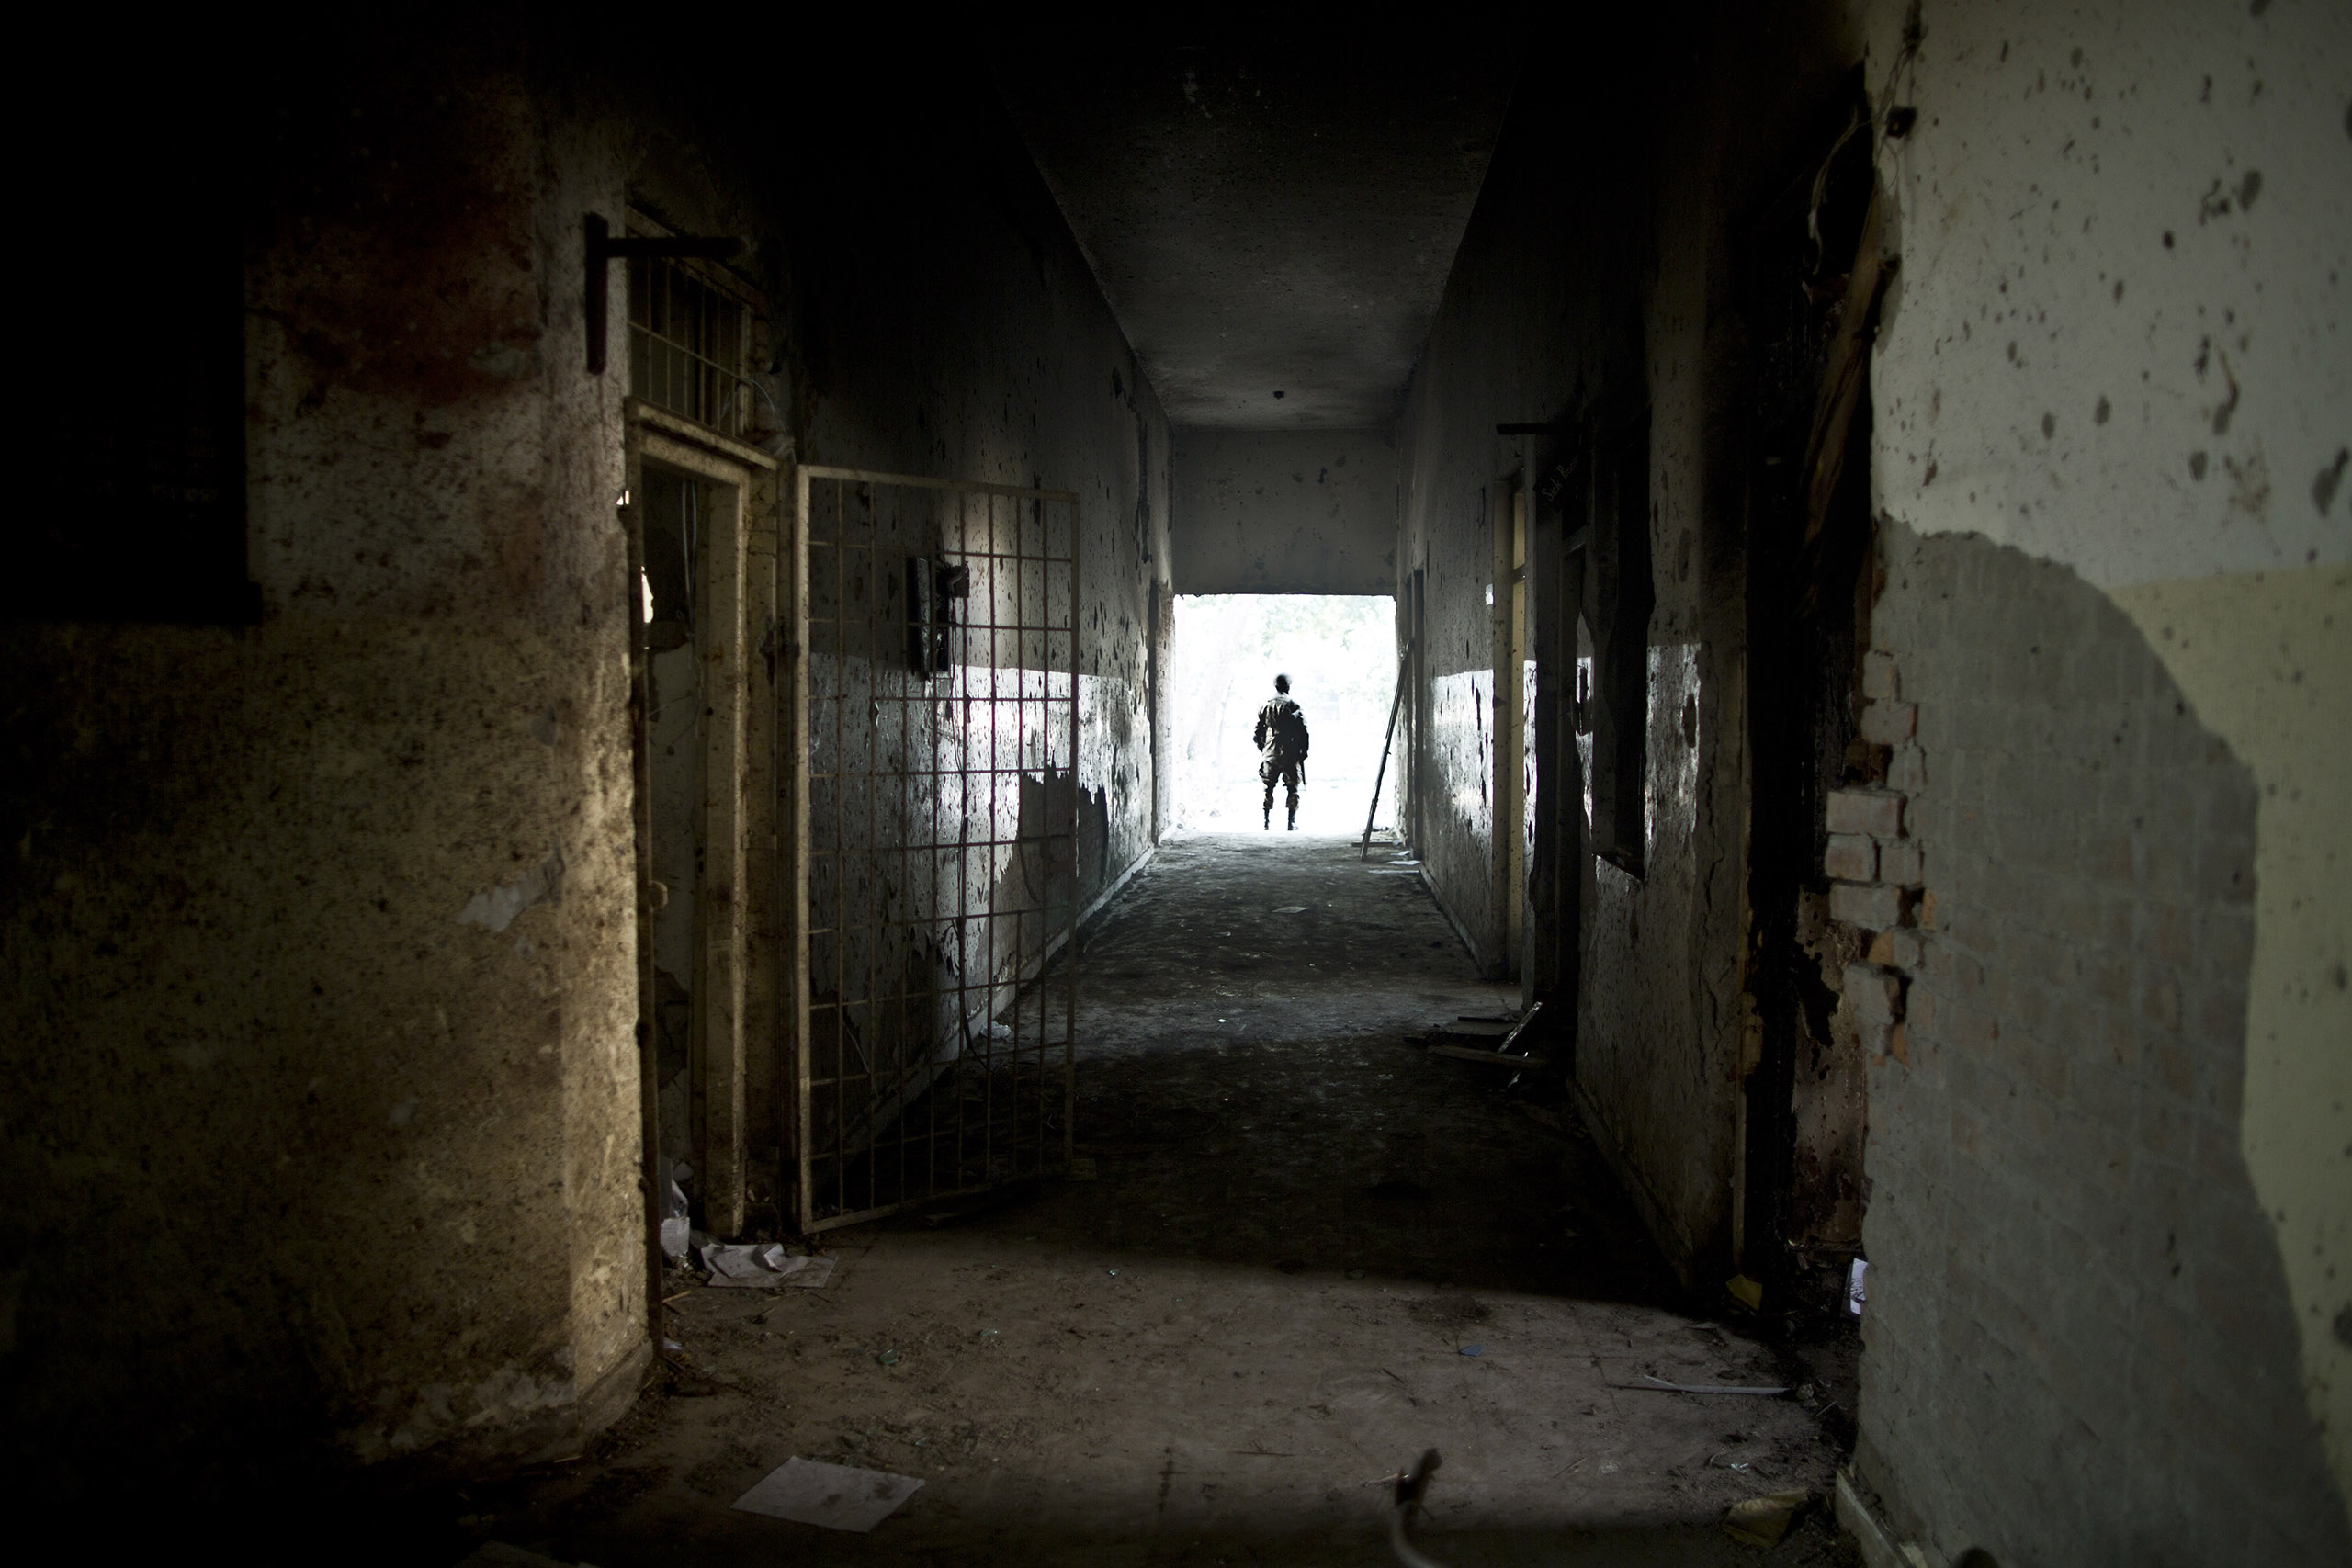 A man stands at the exit of  a hallway that was heavily damaged in the Pakistani Taliban's Dec. 16 attack on the Army Public School. Peshawar, Pakistan. Dec. 18, 2014.